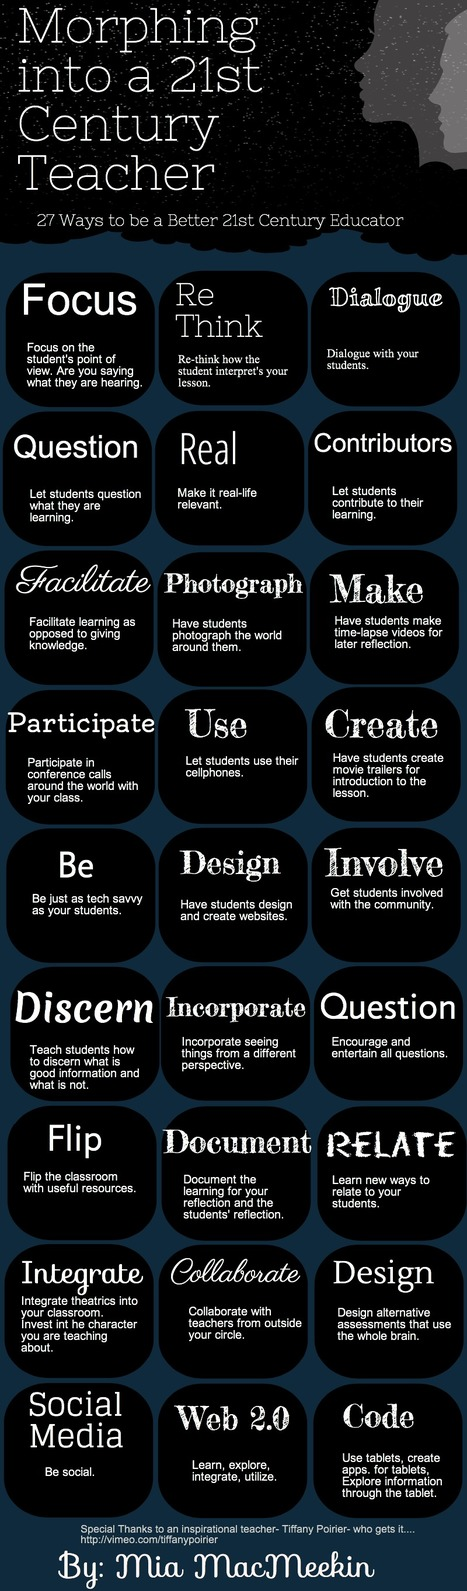 27 Ways To Be A 21st Century Teacher - Infographic | Learning Happens Everywhere! | Scoop.it